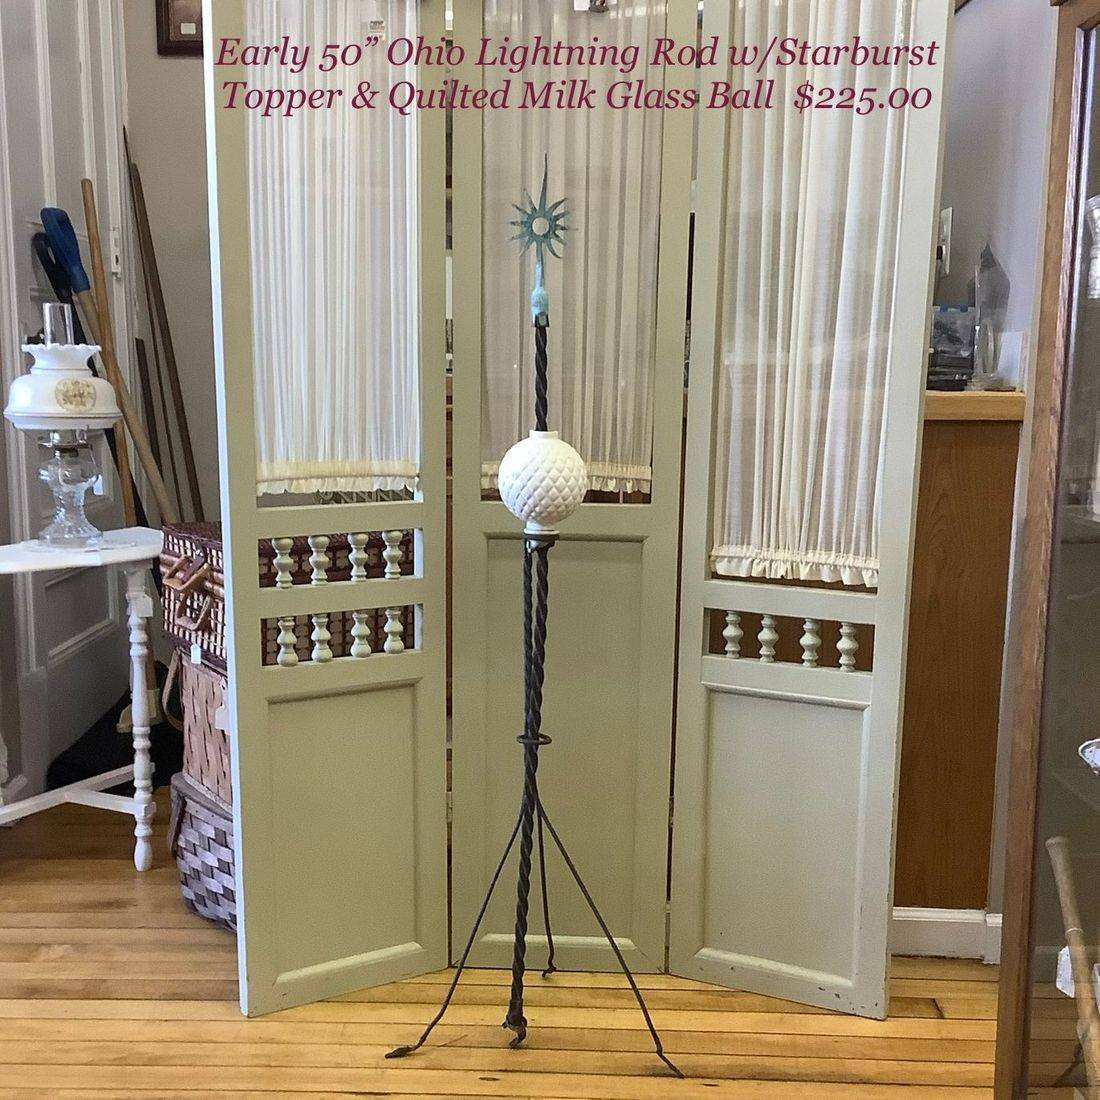 "Early Ohio Lightning Rod Co. 50"" Lightning Rod w/Starburst Topper and Quilted Milk Glass Ball  $225.00"